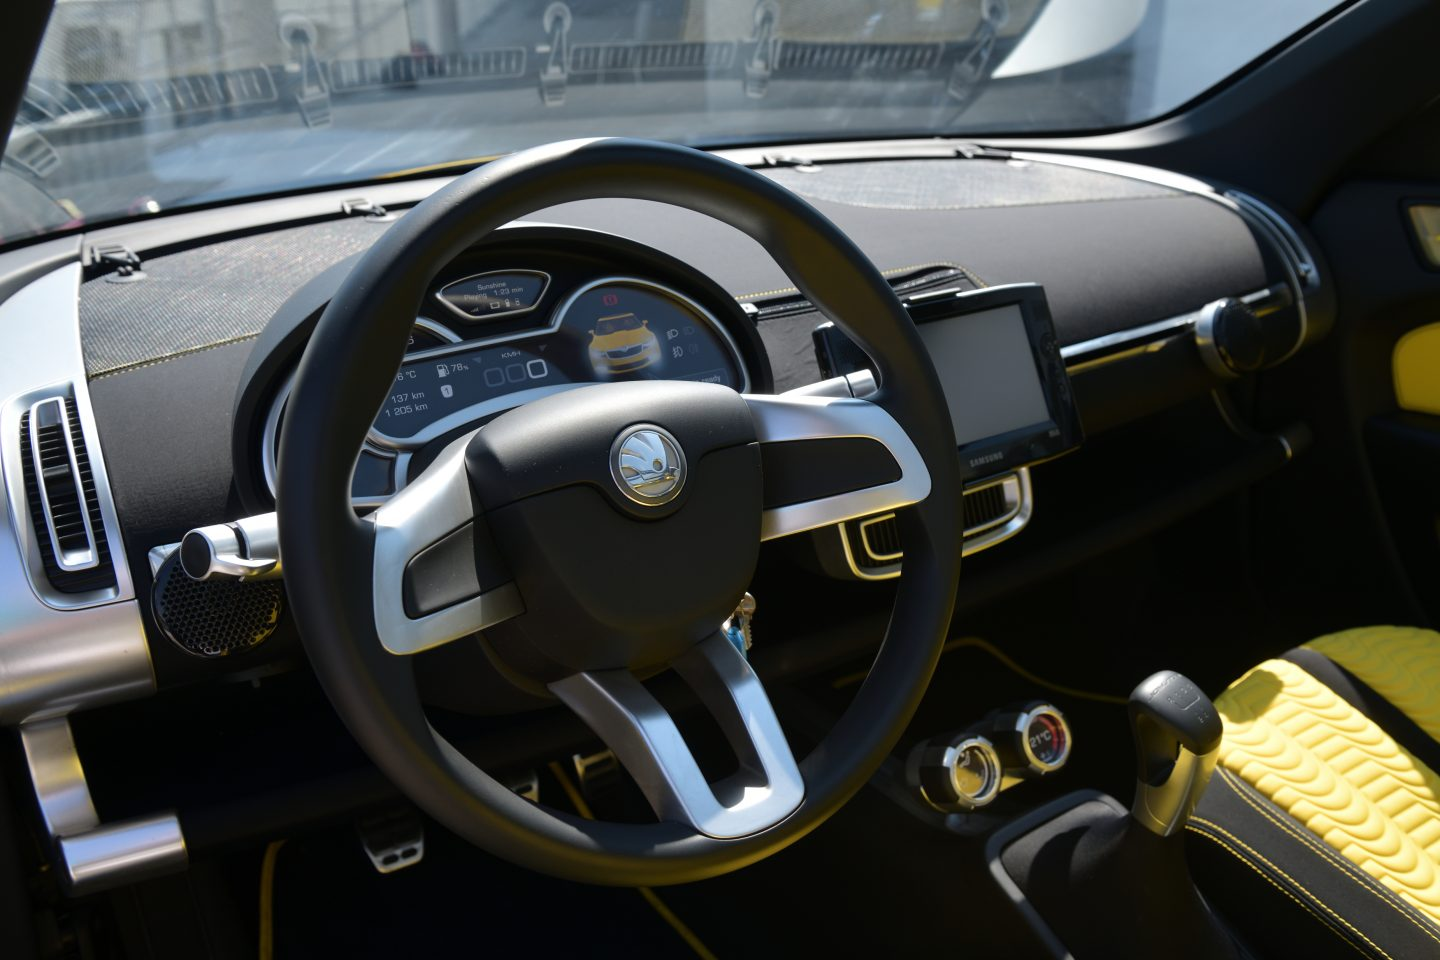 skoda-joyster-interior-design-wheel-dashboard